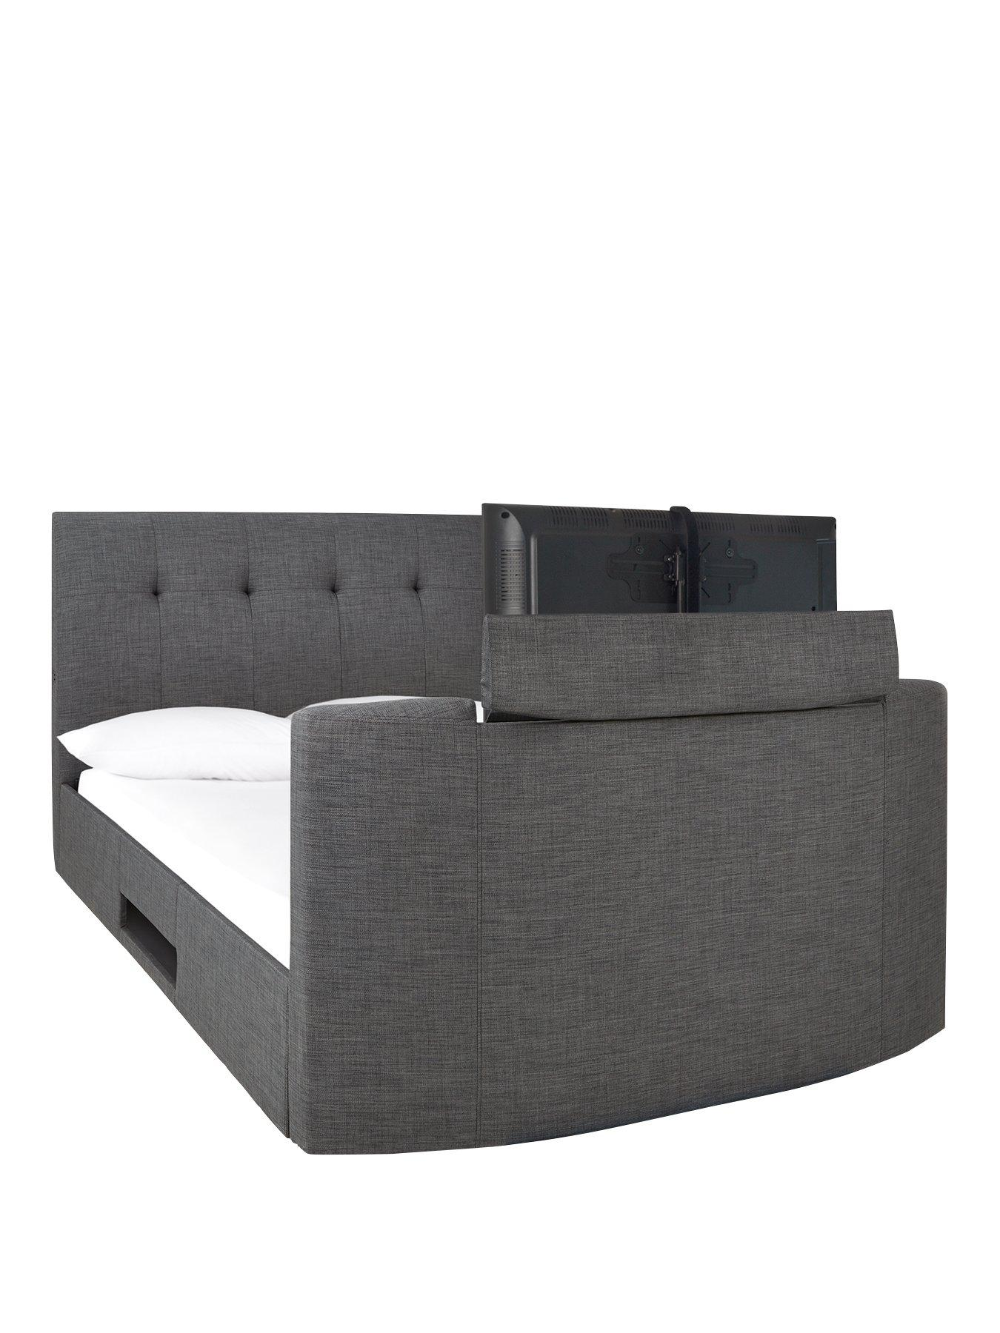 P Avelon Fabric Side Lift Ottoman Storage Tv Bed With Bluetooth